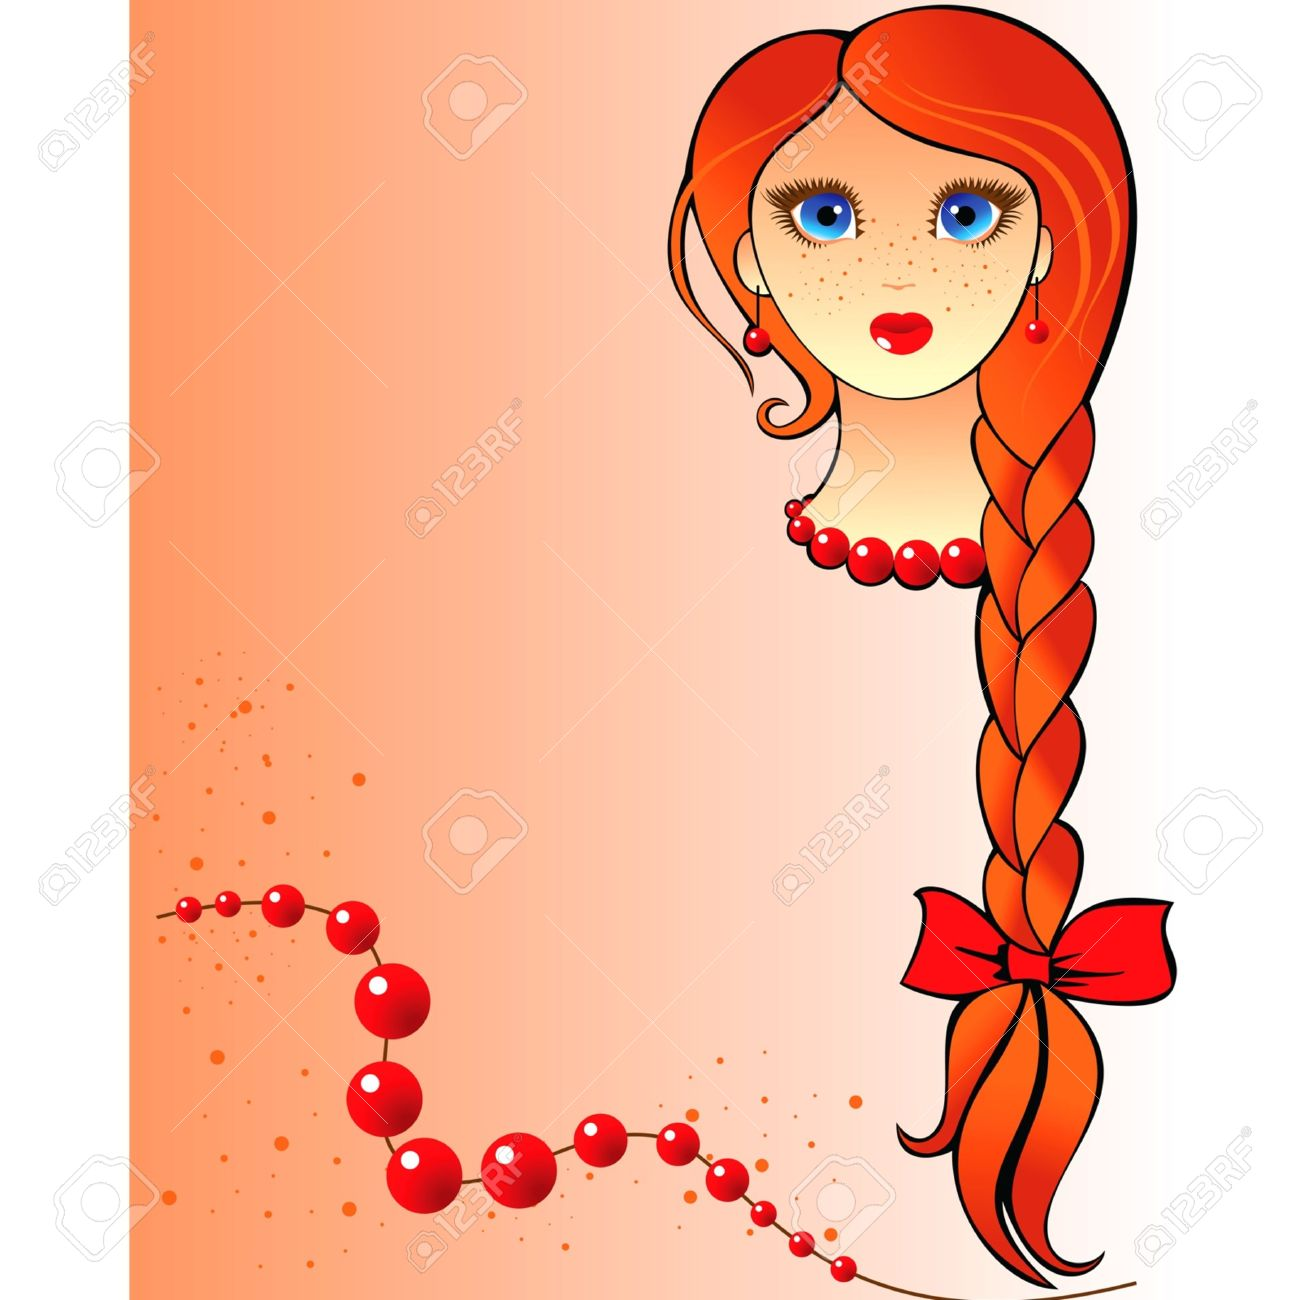 portrait of a red-haired girl with freckles and long braid Stock Vector - 11236654